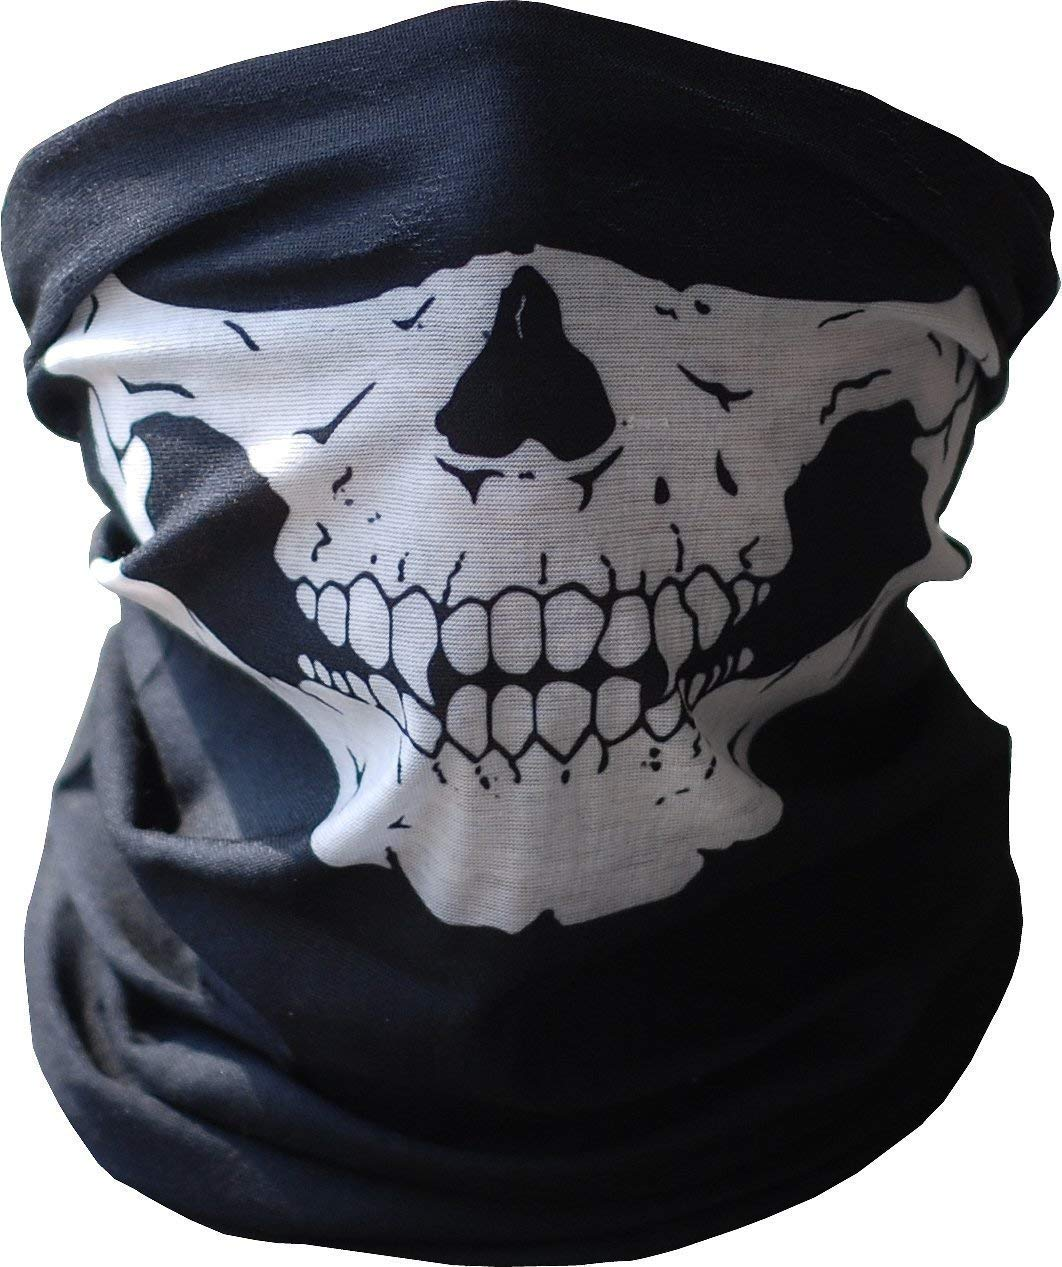 Multifunctional Outdoor Face Mask, Seamless Headwear Protective Bandana Skeleton Face Shield For Fishing/Hunting/Camping/Hiking/Sports 8